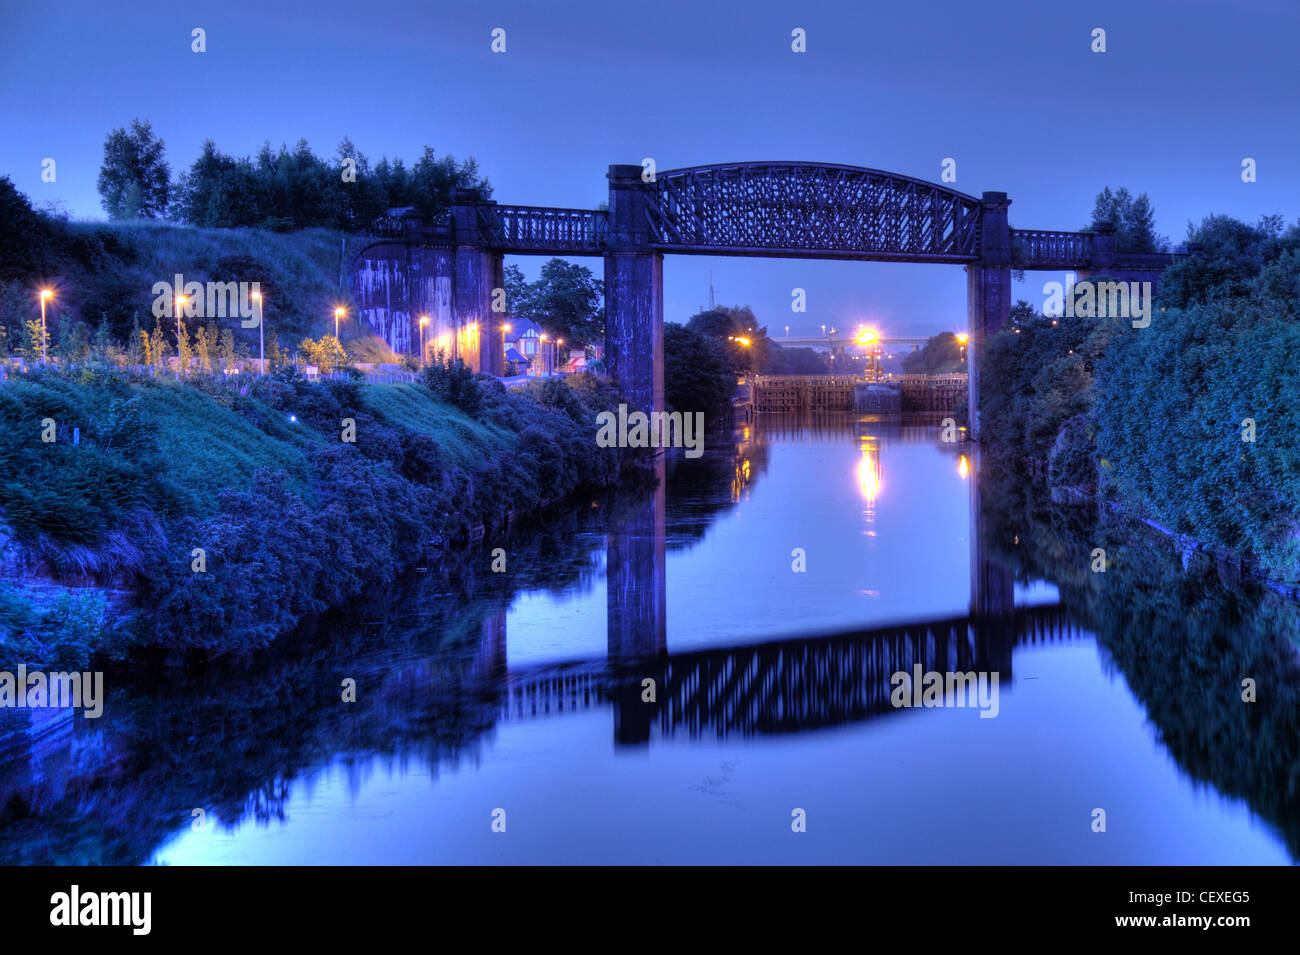 Dusk,at,the,Manchester,Ship,Canal,high,level,railway,bridge,A50,Cheshire,lines,Altrincham,Trans,Pennine,Trail,TPT,Grappenhall,from,swing,bridge,cold,frosty,night,shot,reflection,Latchford,Lock,Locks,evening,gotonysmith,Knutsford,Road,rd,gotonysmith,night,nighttime,Victorian,Engineering,Warrington,waterway,MSCC,@hotpixuk,hotpixuk,first,iconic,tourist,tour,travel,history,historic,architecture,Buy Pictures of,Buy Images Of,Victorian Engineering